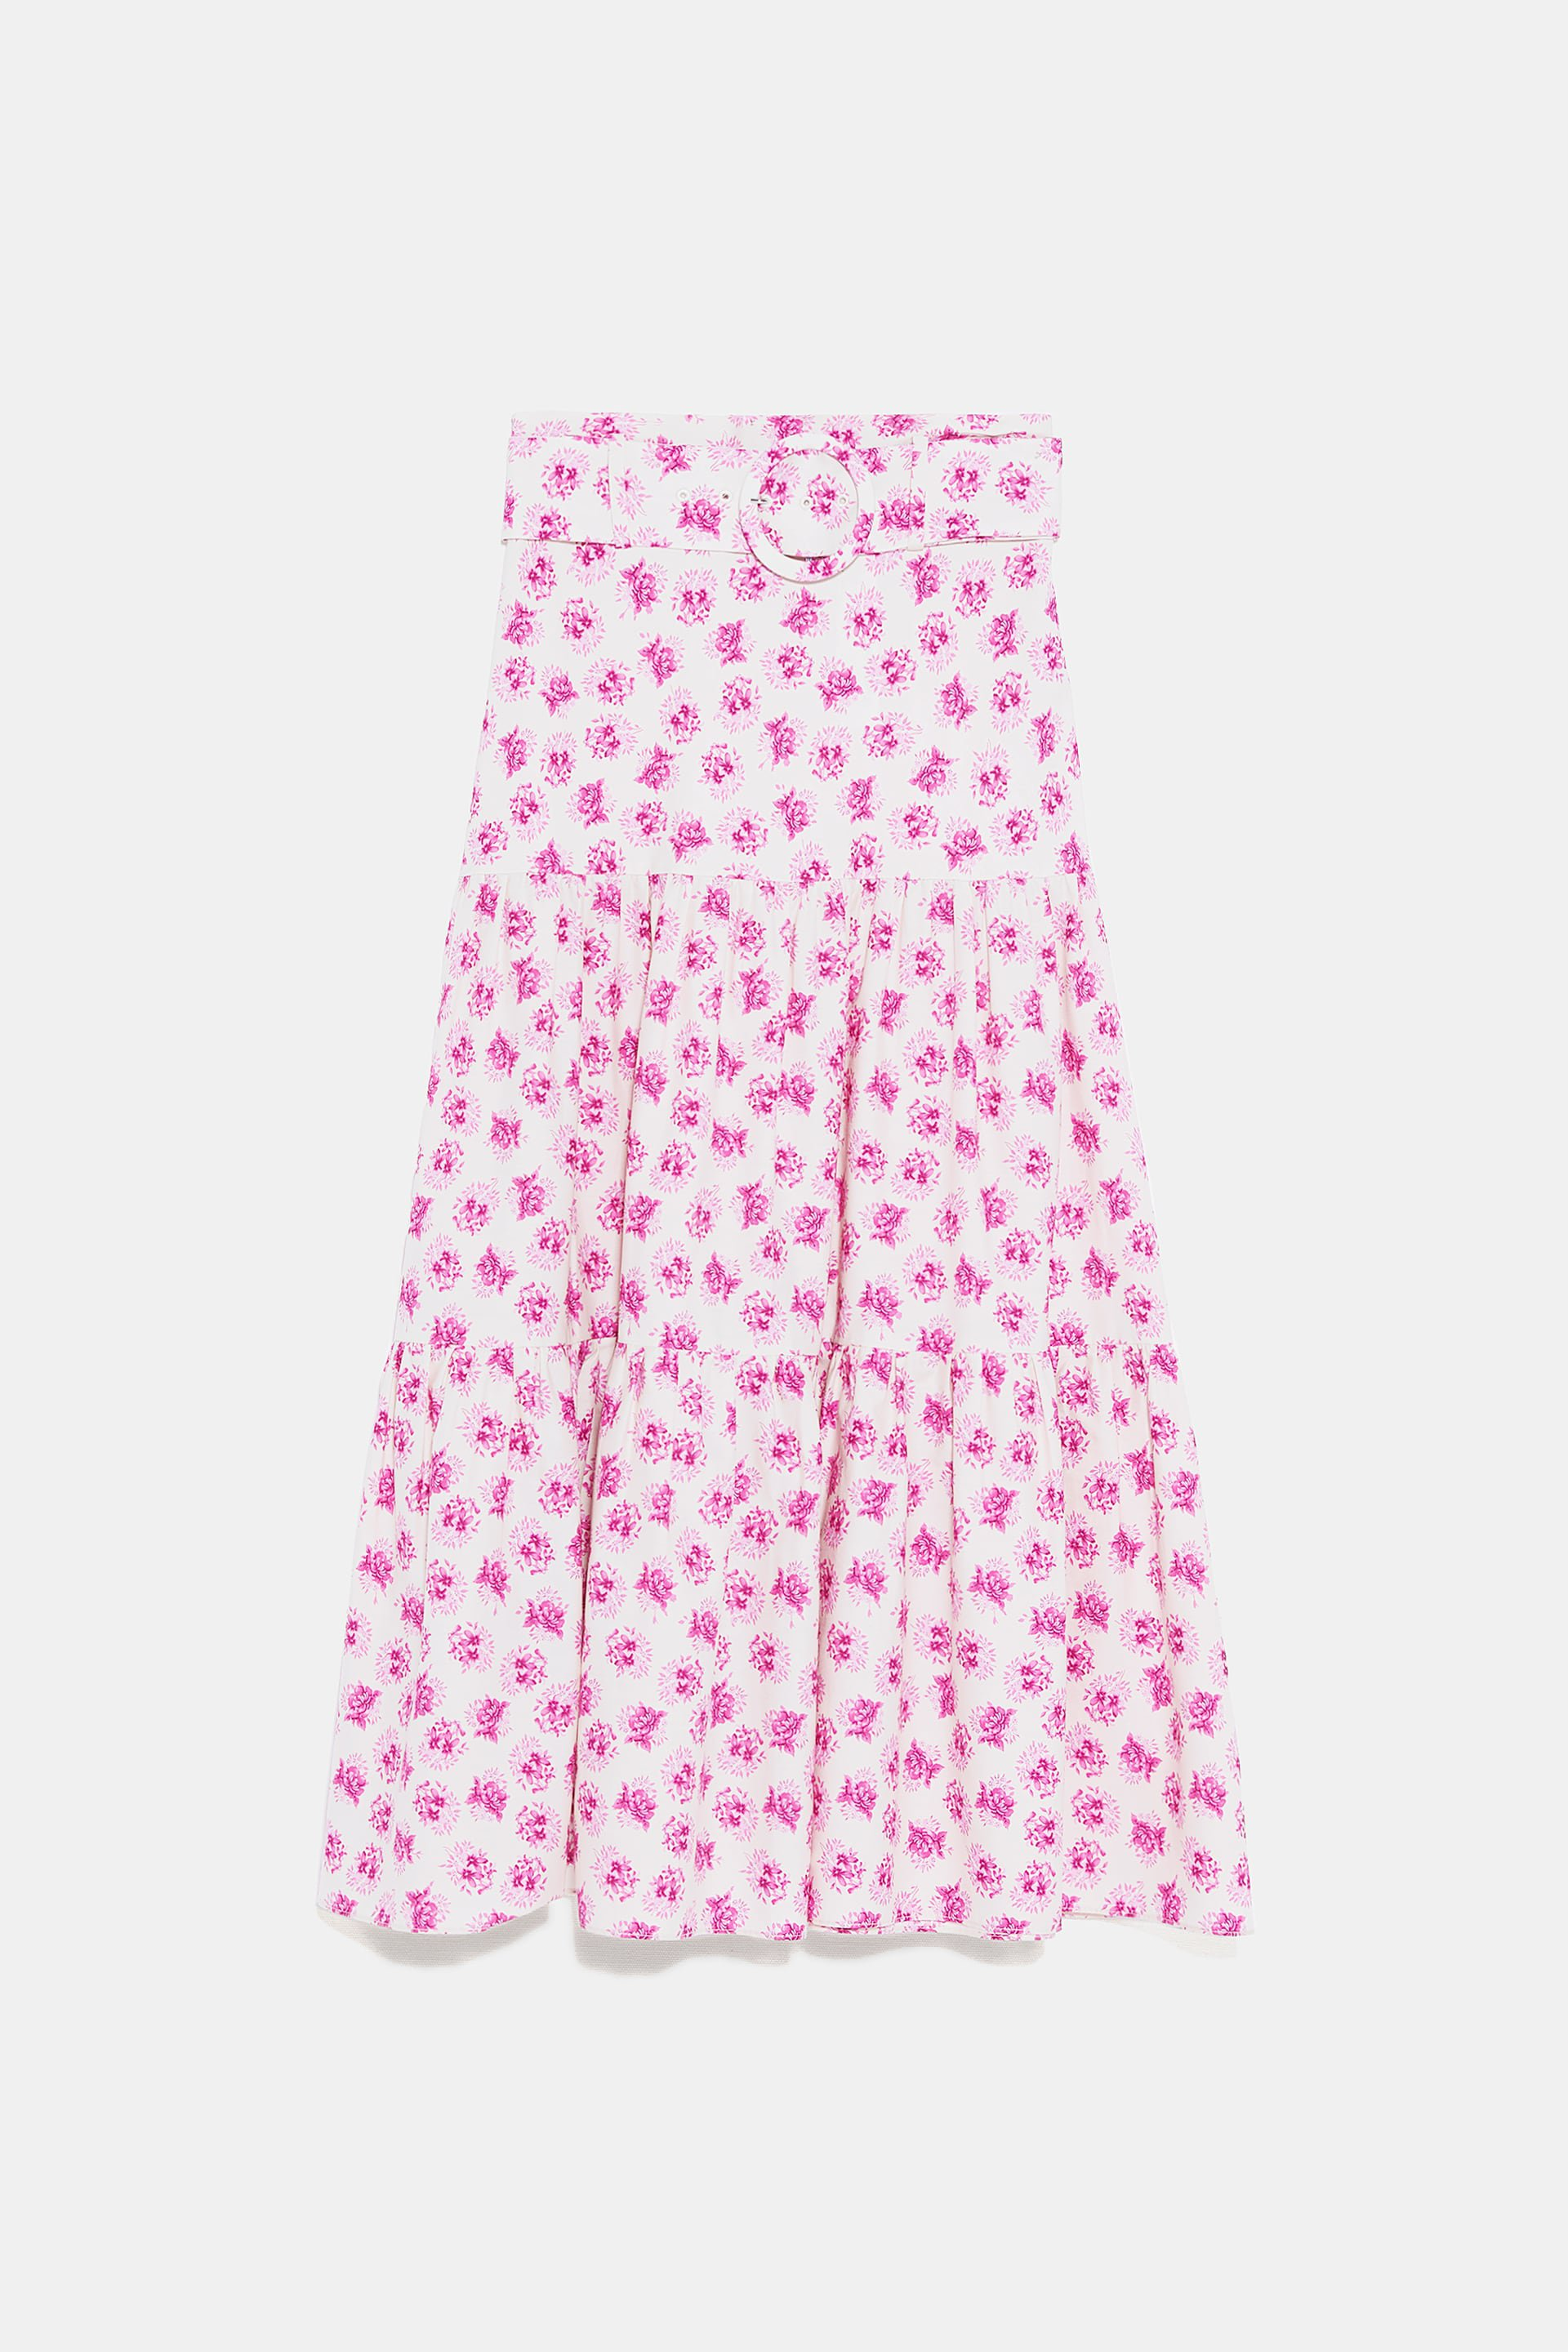 BELTED PRINT SKIRT - View All-SKIRTS-WOMAN | ZARA United States